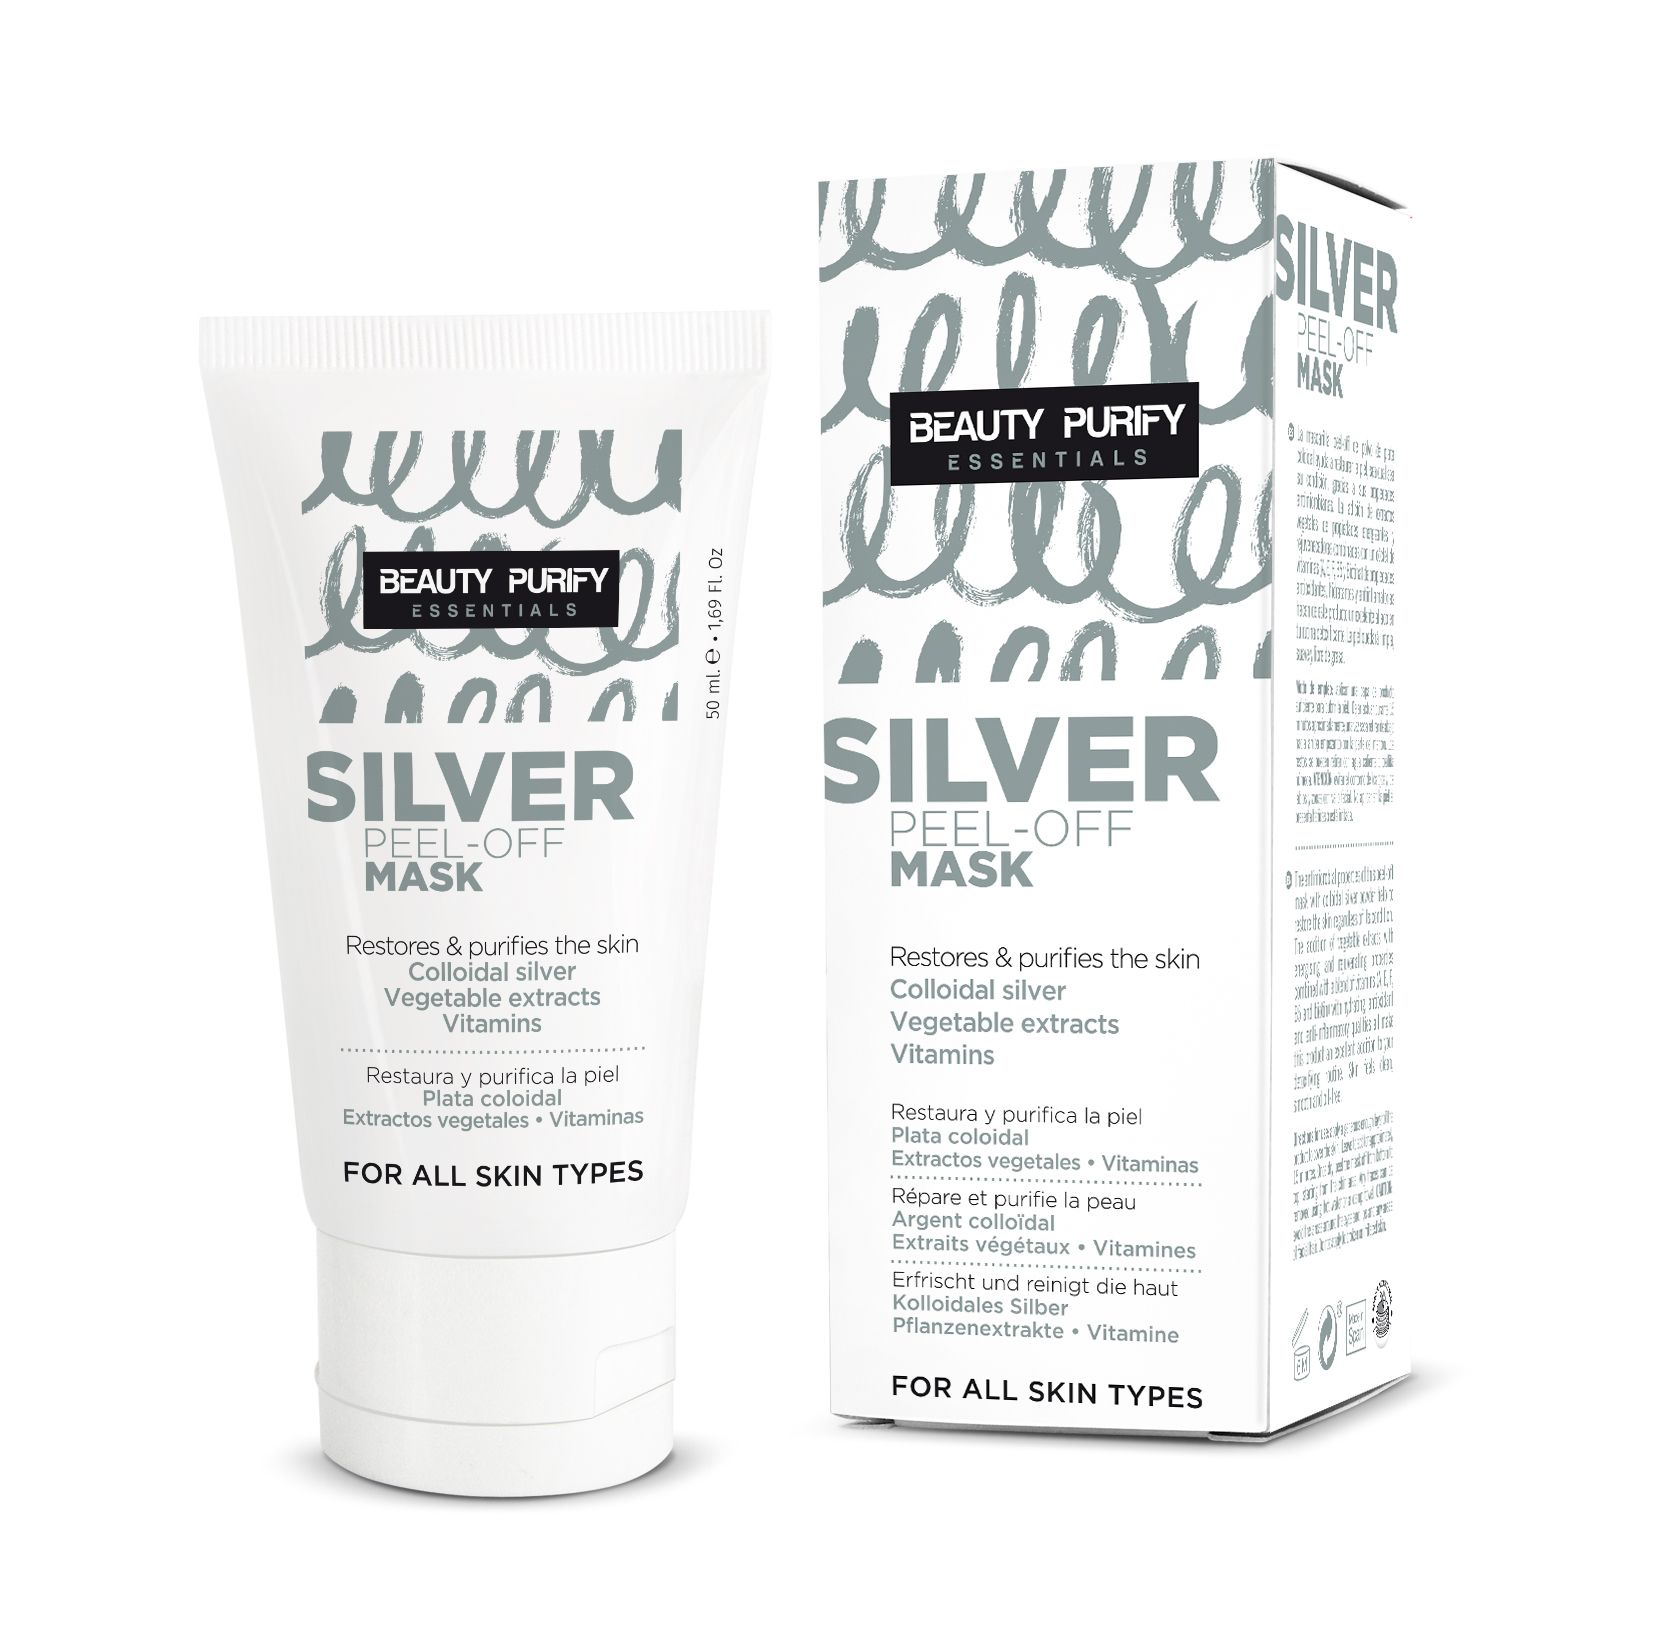 Beauty Purify Gold y Silver, dos excelentes mascarillas peel-off